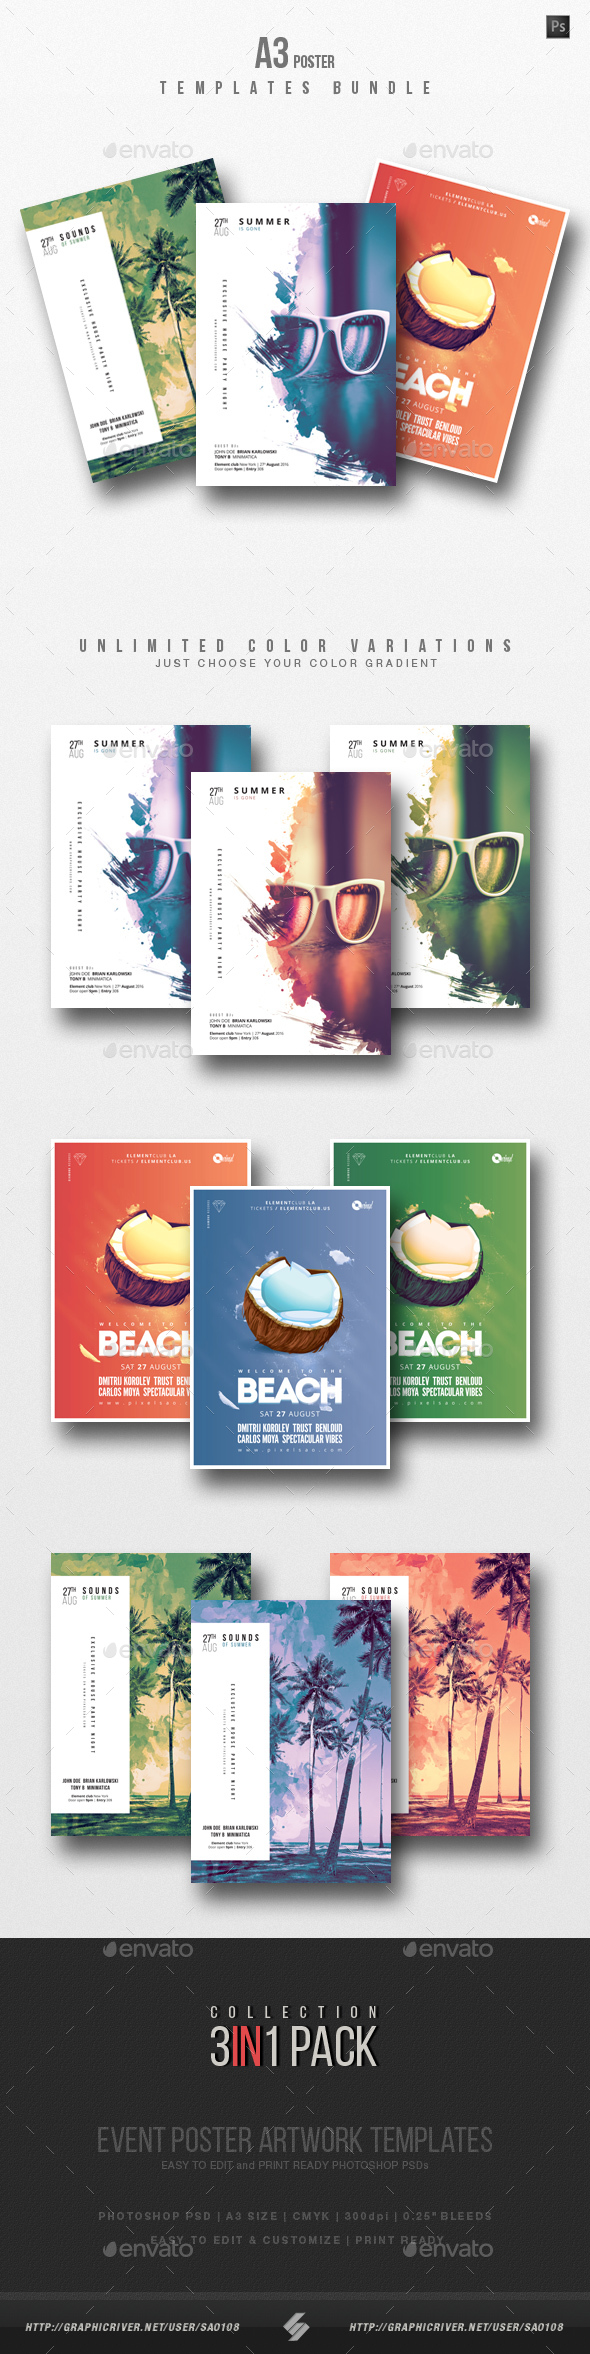 Summer Beach 2 - Party Flyer / Poster Templates Bundle - Clubs & Parties Events